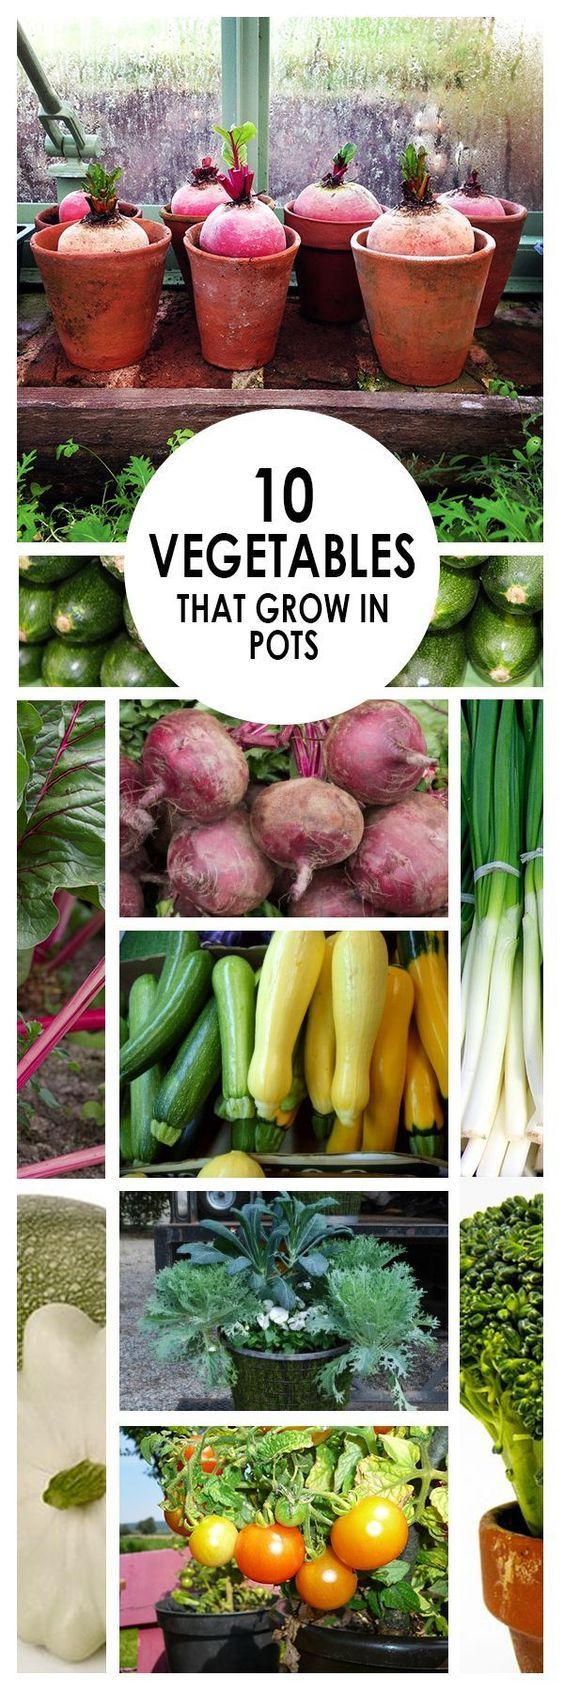 10 Ve ables that Grow in Pots Page 4 of 10 Gardening TipsVe able GardeningContainer